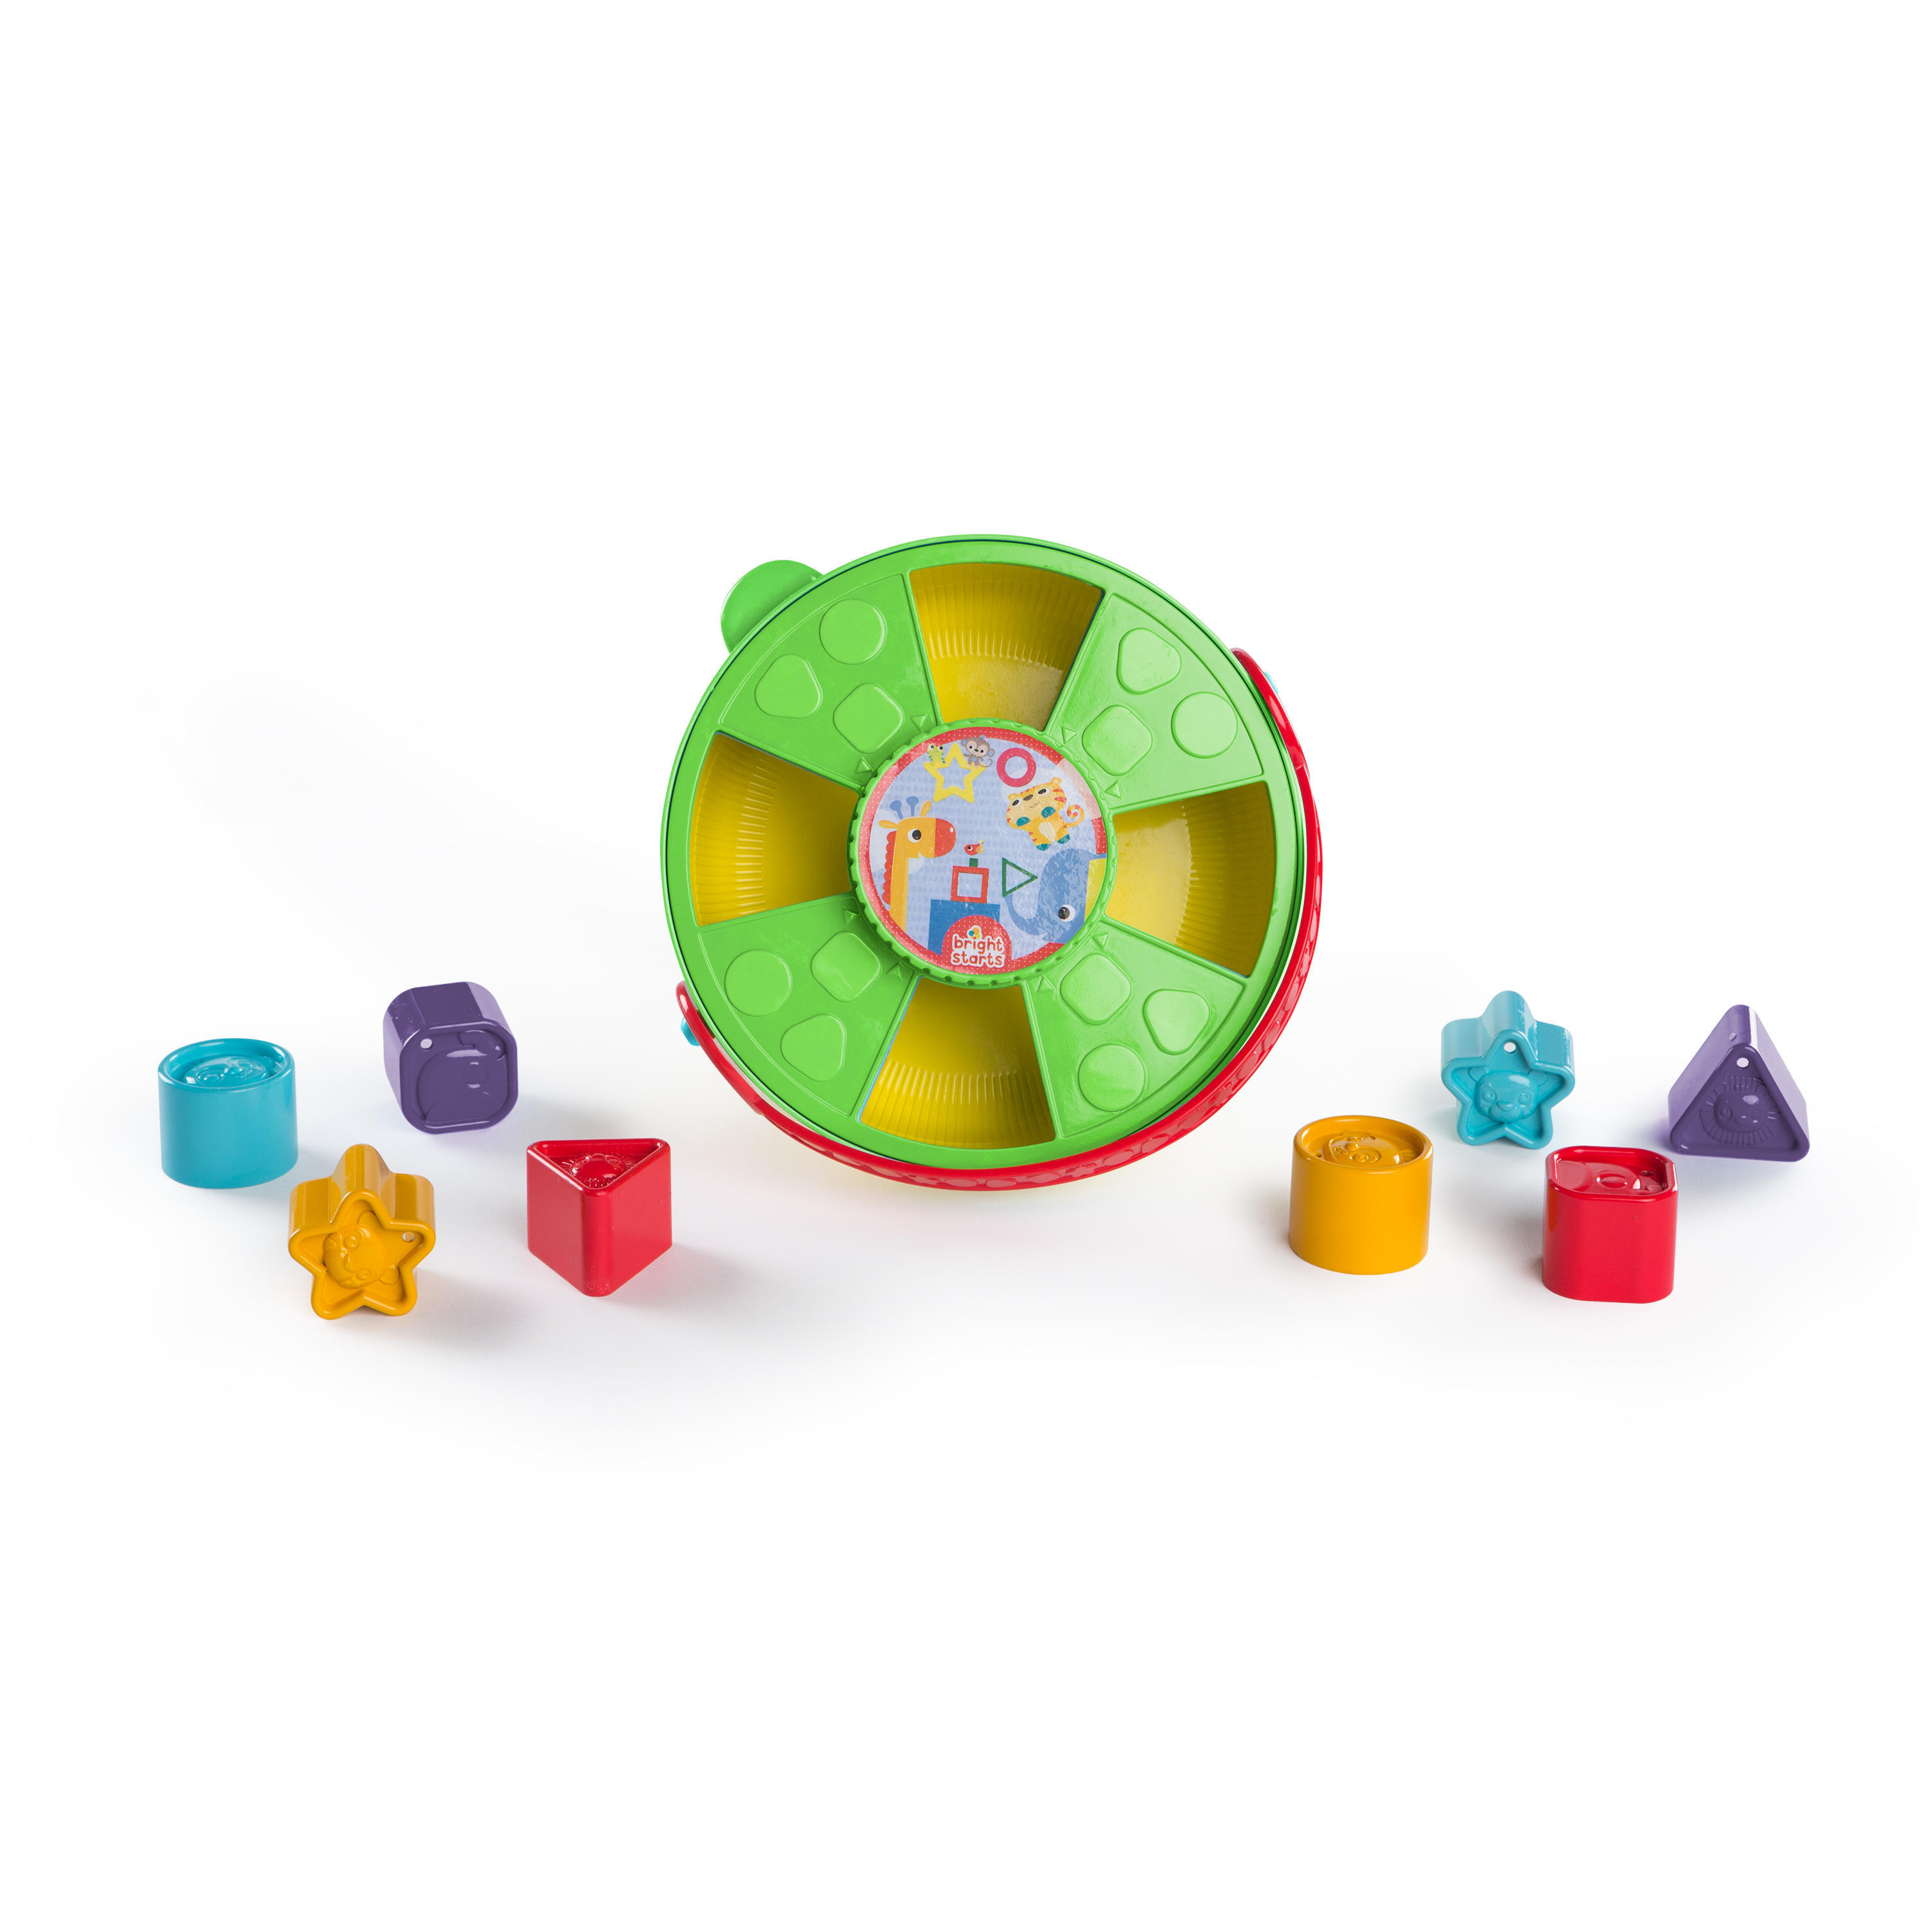 Bright Starts 4 In 1 Twist & Grow Shape Sorter by Bright Starts